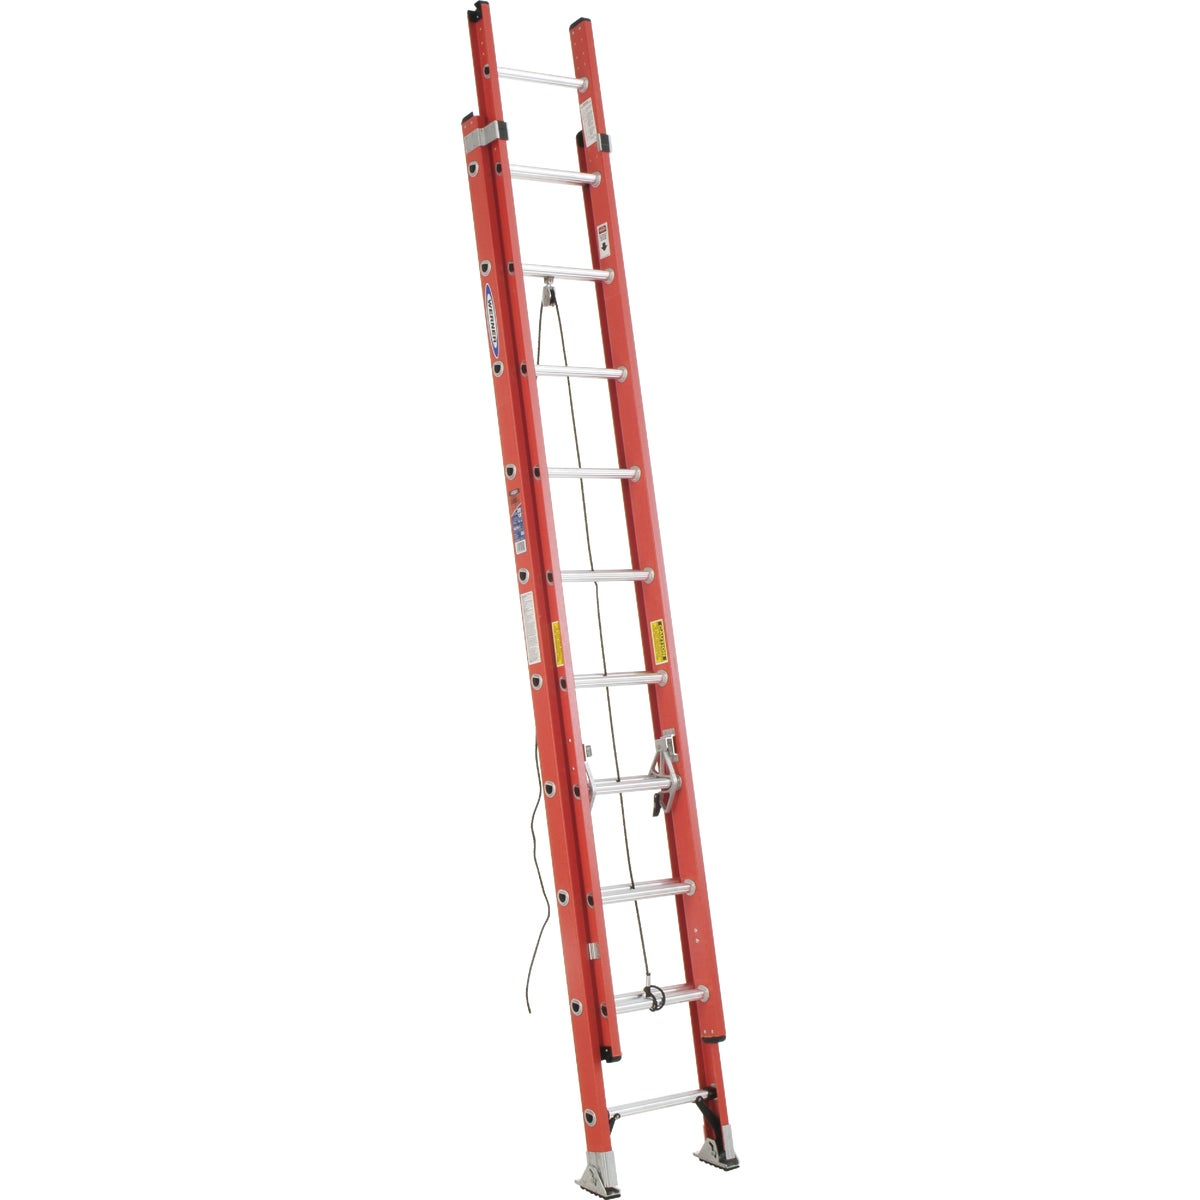 T-1A 20' FBGL EXT LADDER - D6220-2 by Werner Ladder